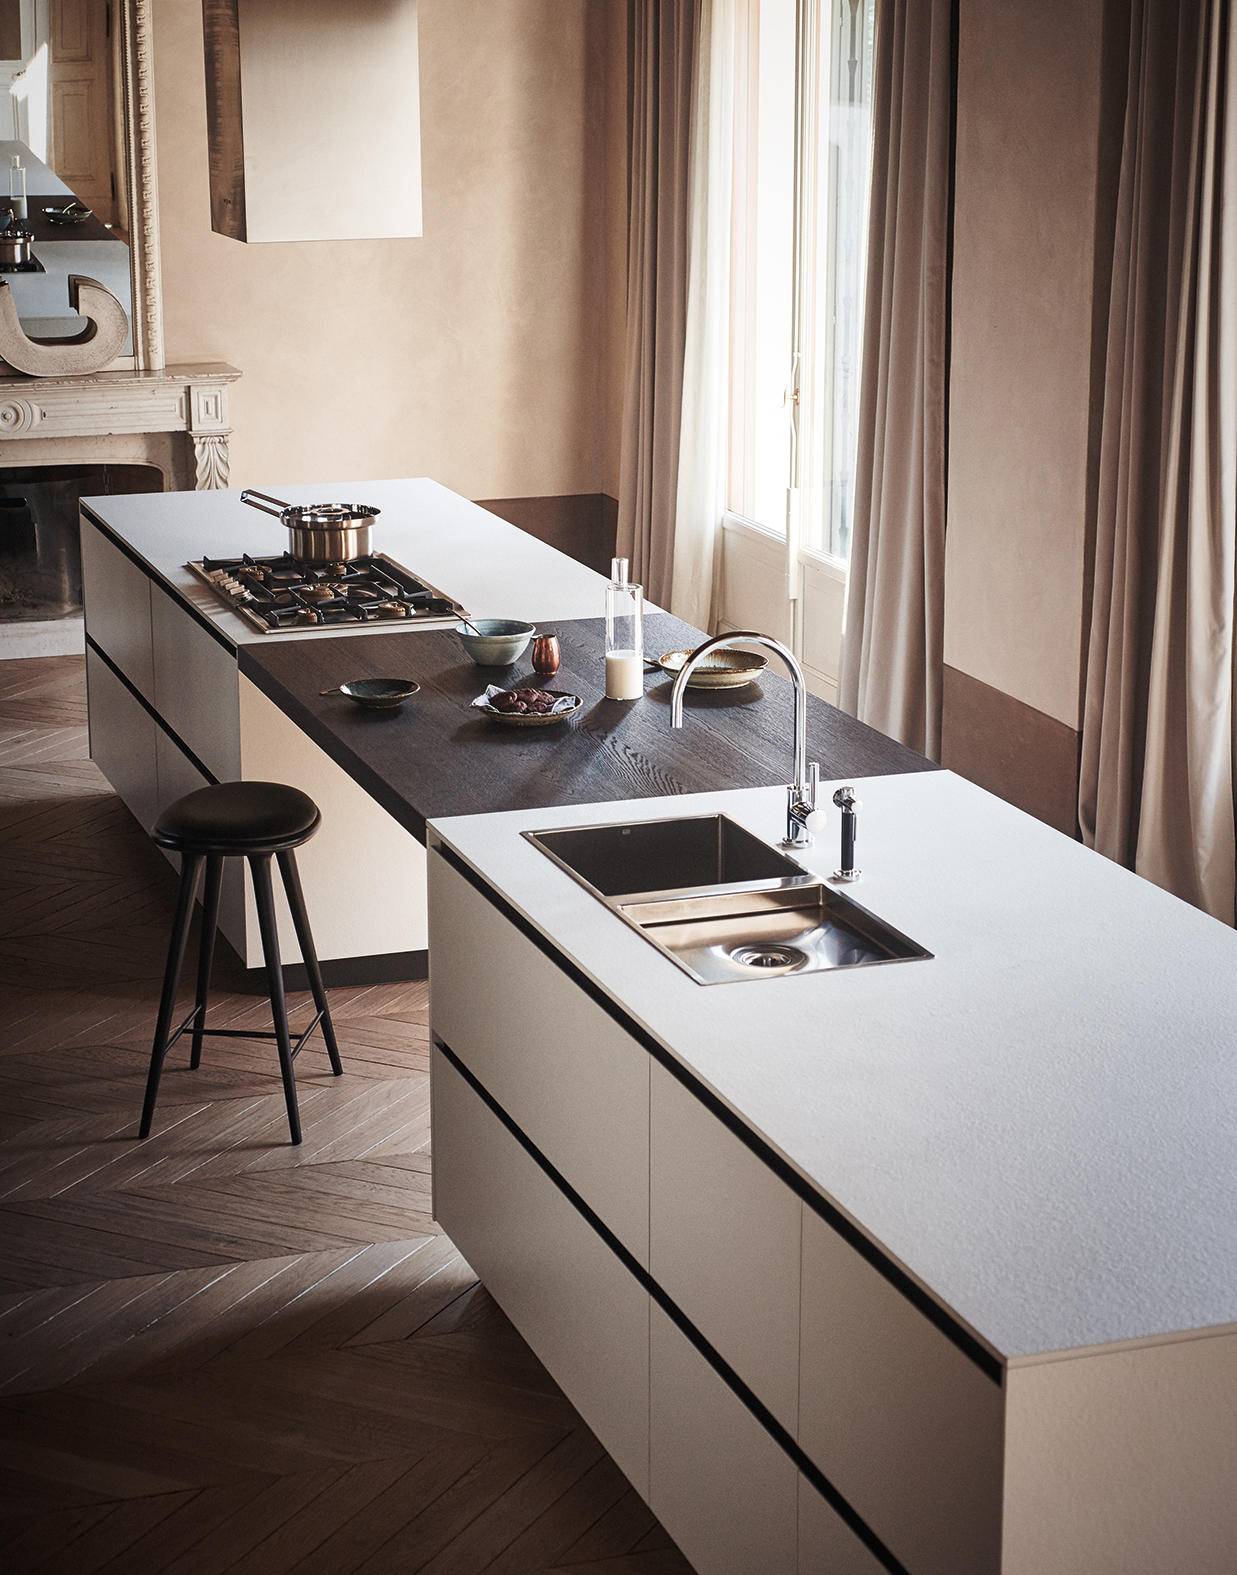 Maxima 2 2 composition 3 fitted kitchens from cesar for Map arredamenti